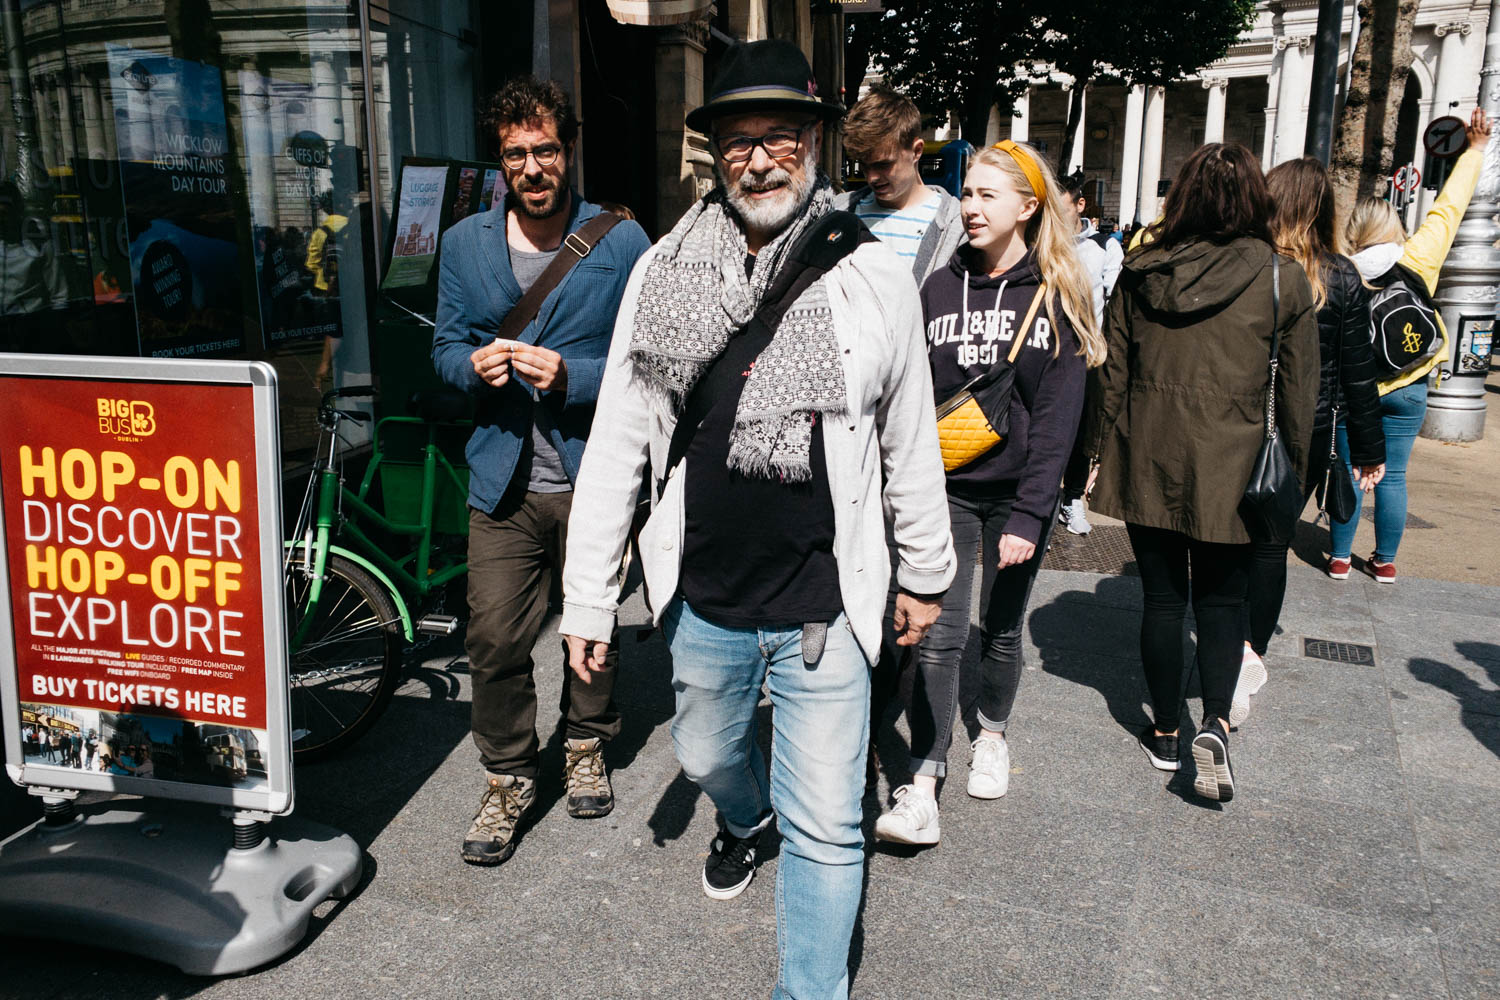 People walking in Dublin City - Street Photograpy on an iPhone X